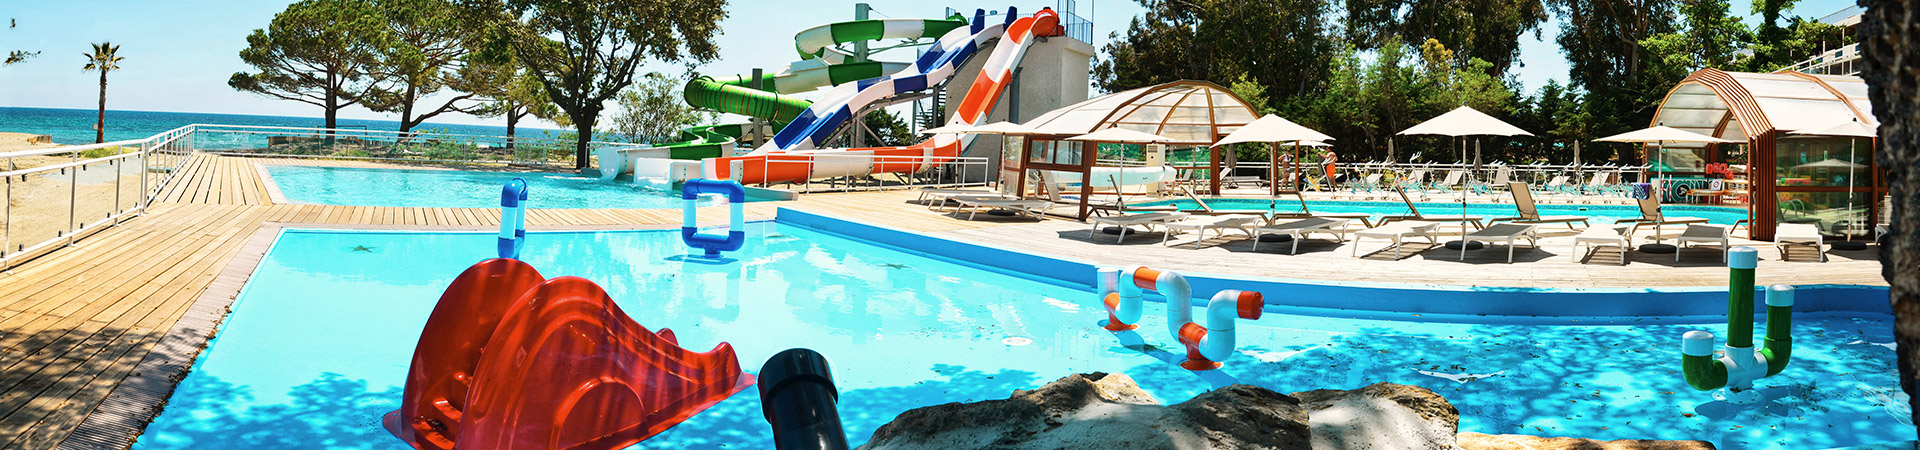 pataugeoire-chauffee-camping-merendella